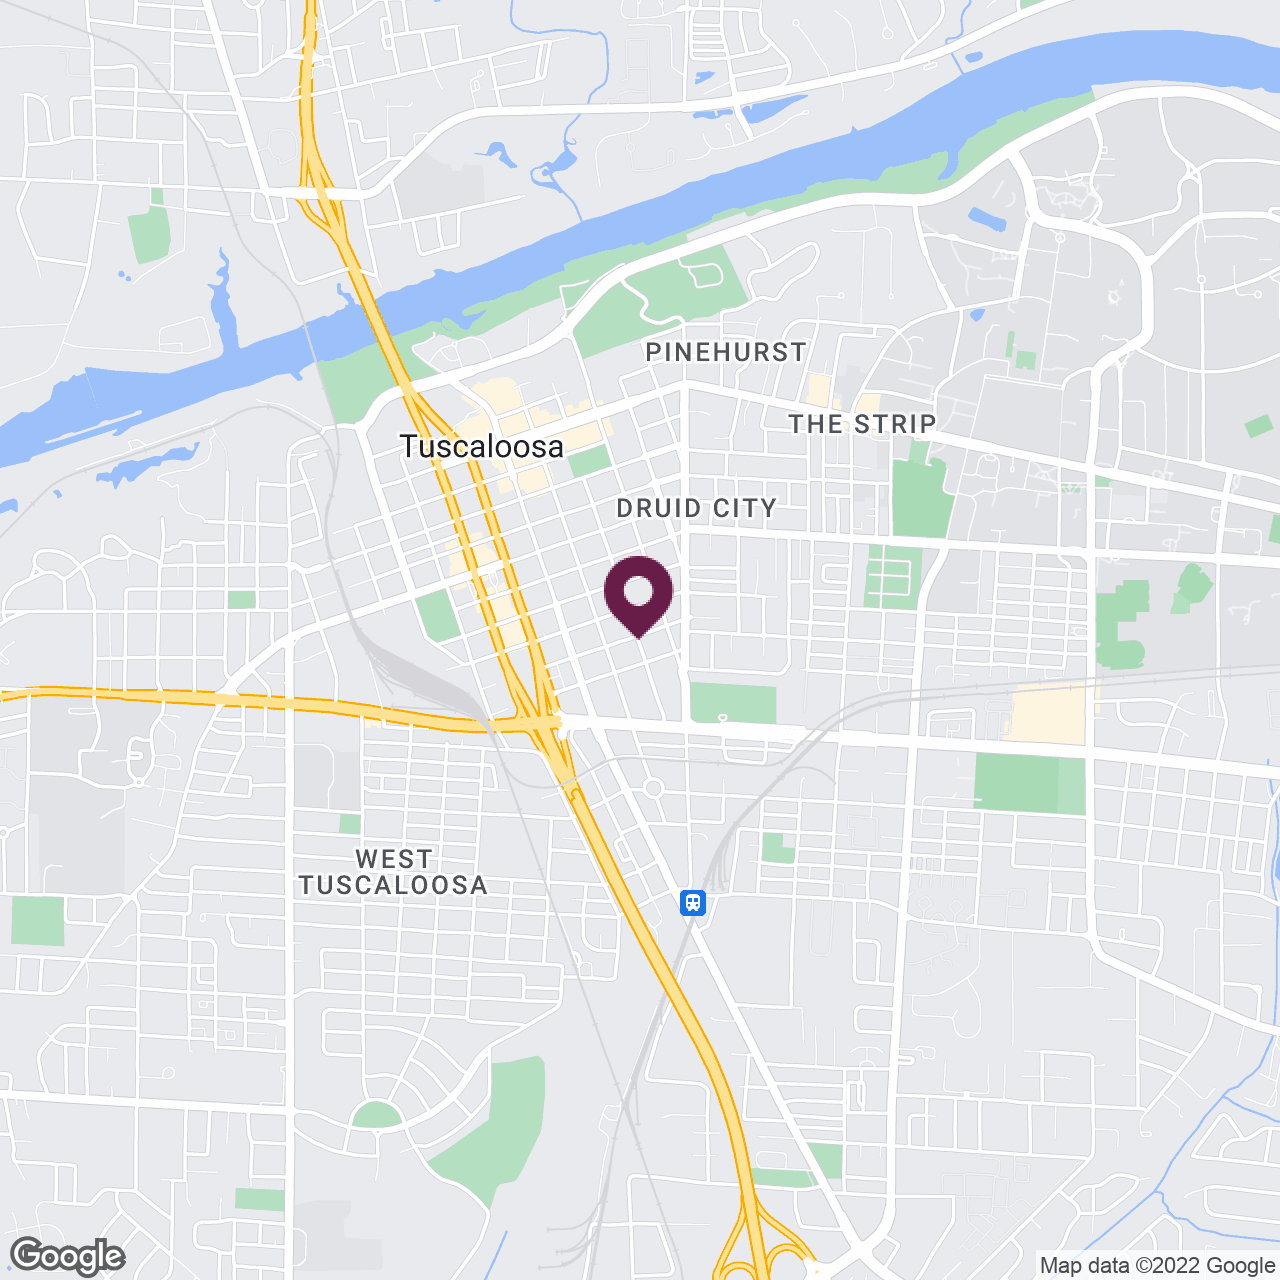 Google Maps static image of Tuscaloosa, AL